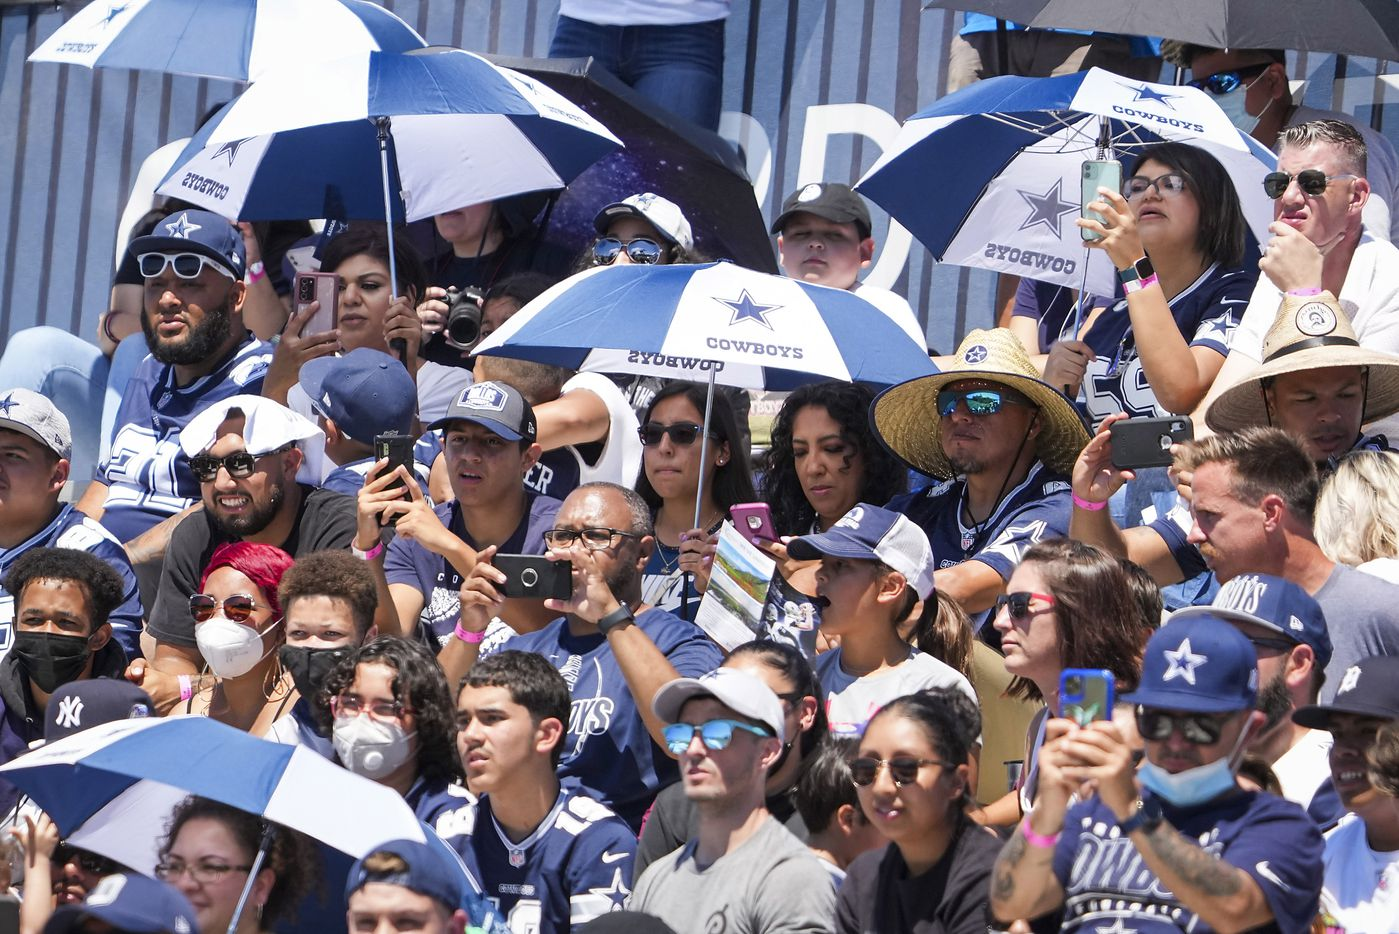 Dallas Cowboys fans use umbrellas for shade as they watch a practice at training camp on Sunday, Aug. 1, 2021, in Oxnard, Calif.